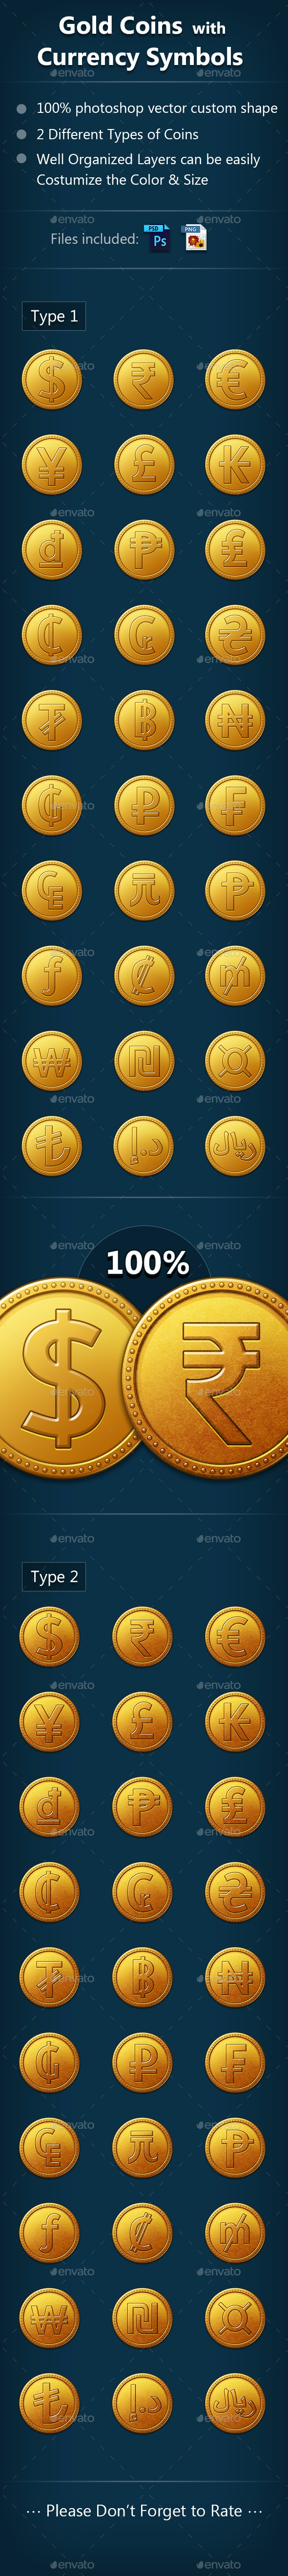 Gold Coin with Currency Symbols - Icons